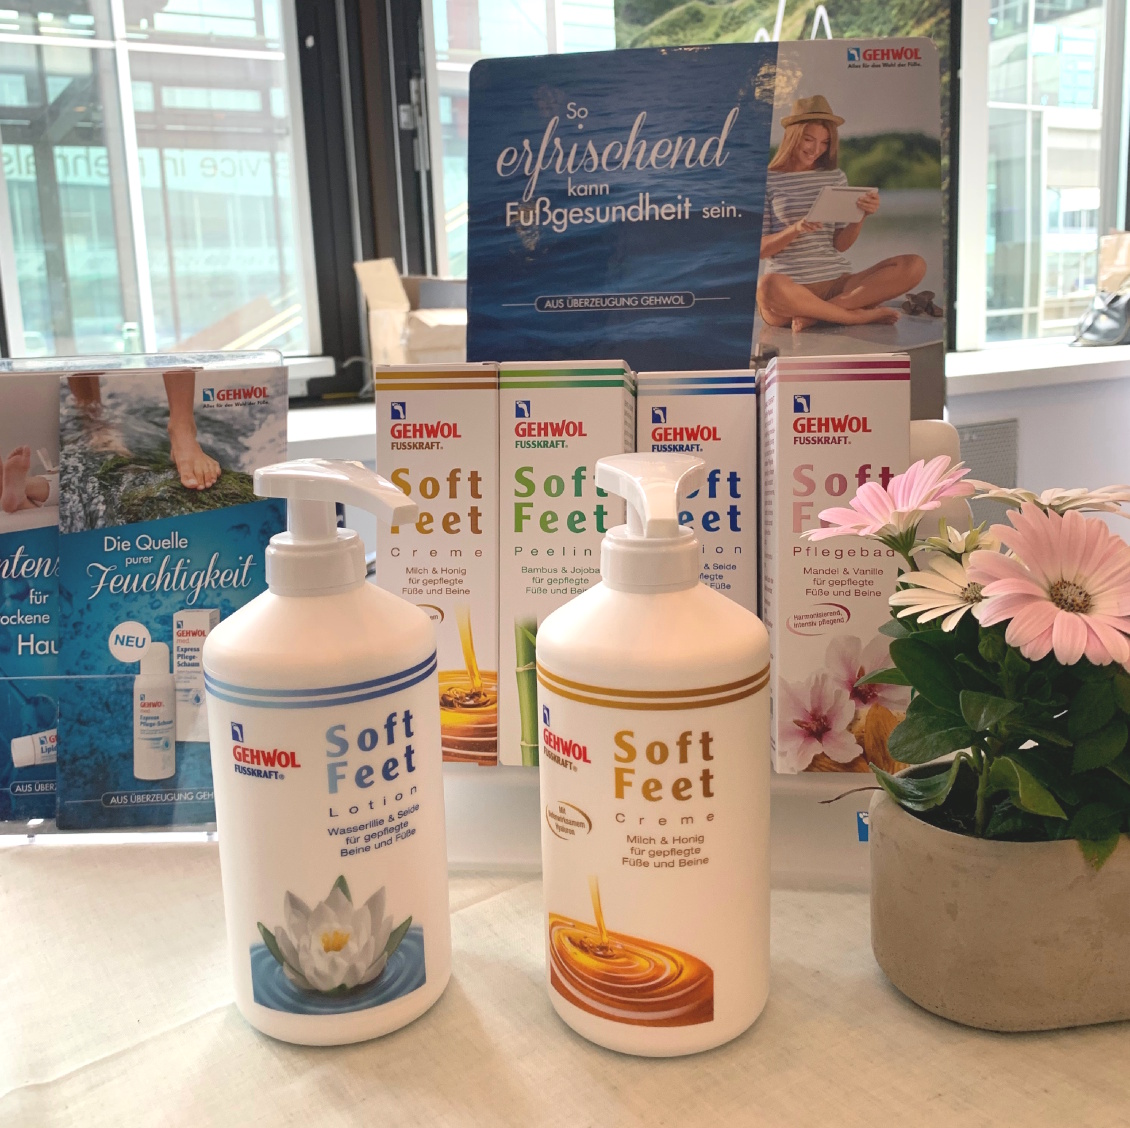 beautypress Blogger Event Mai 2019 Frankfurt Eventbericht - gehwol Soft Feet